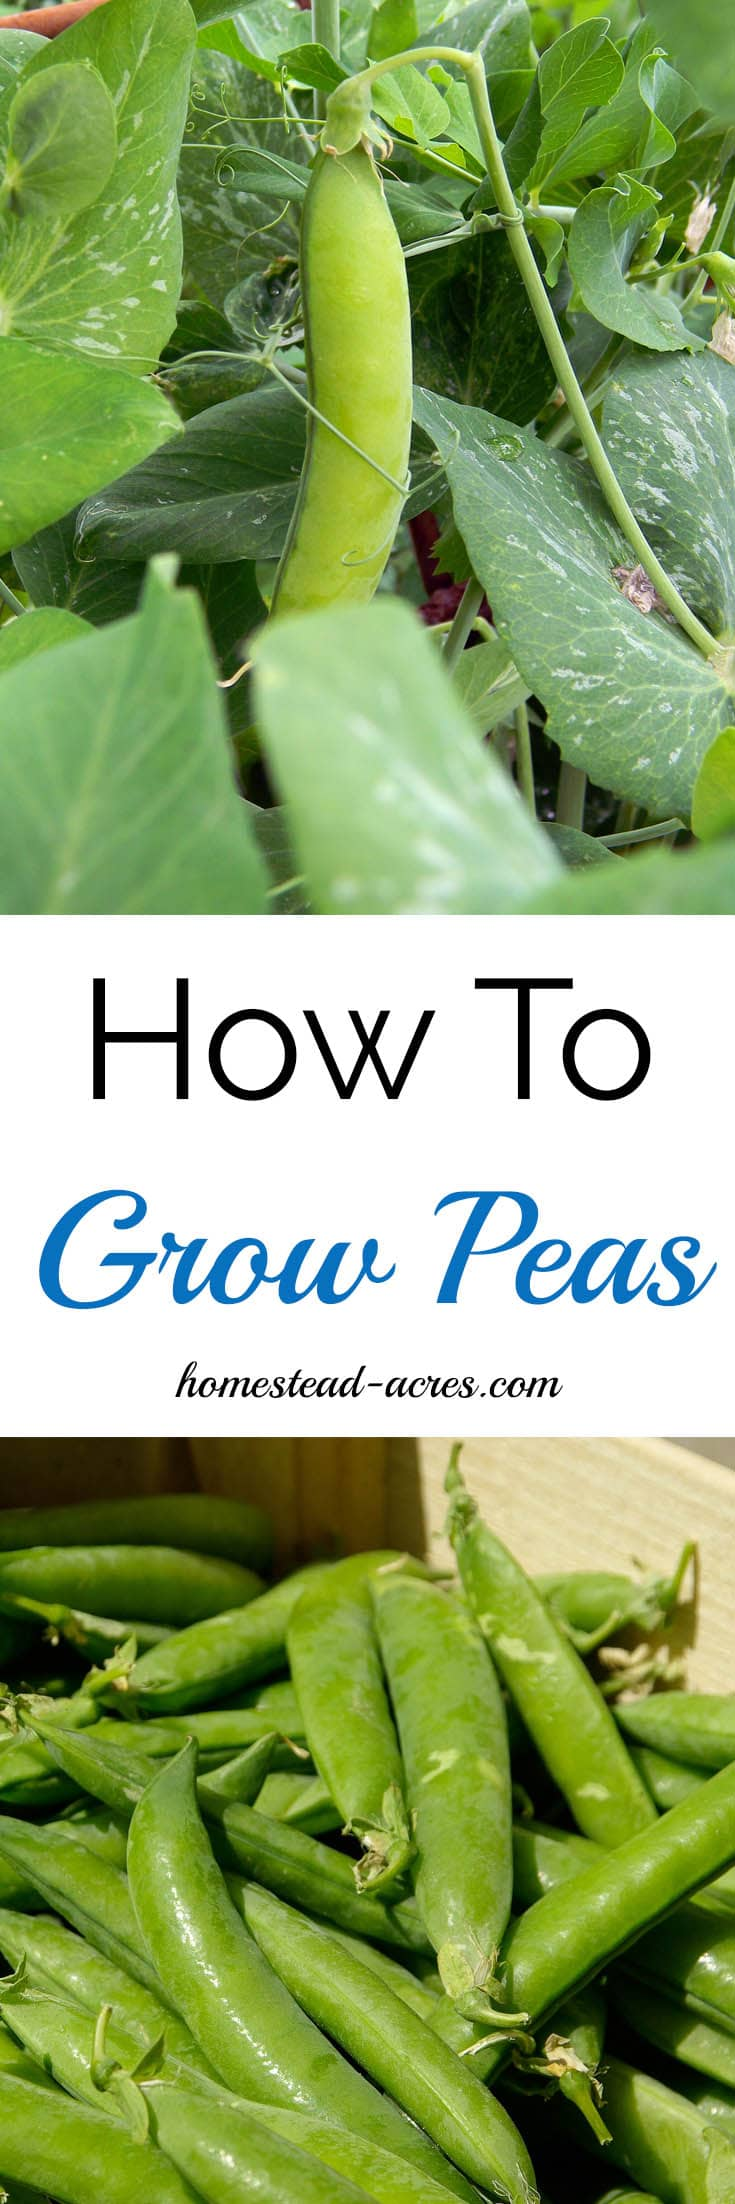 How To Grow Peas. How to easily grow peas in your garden from planting to harvest. www.homestead-acres.com